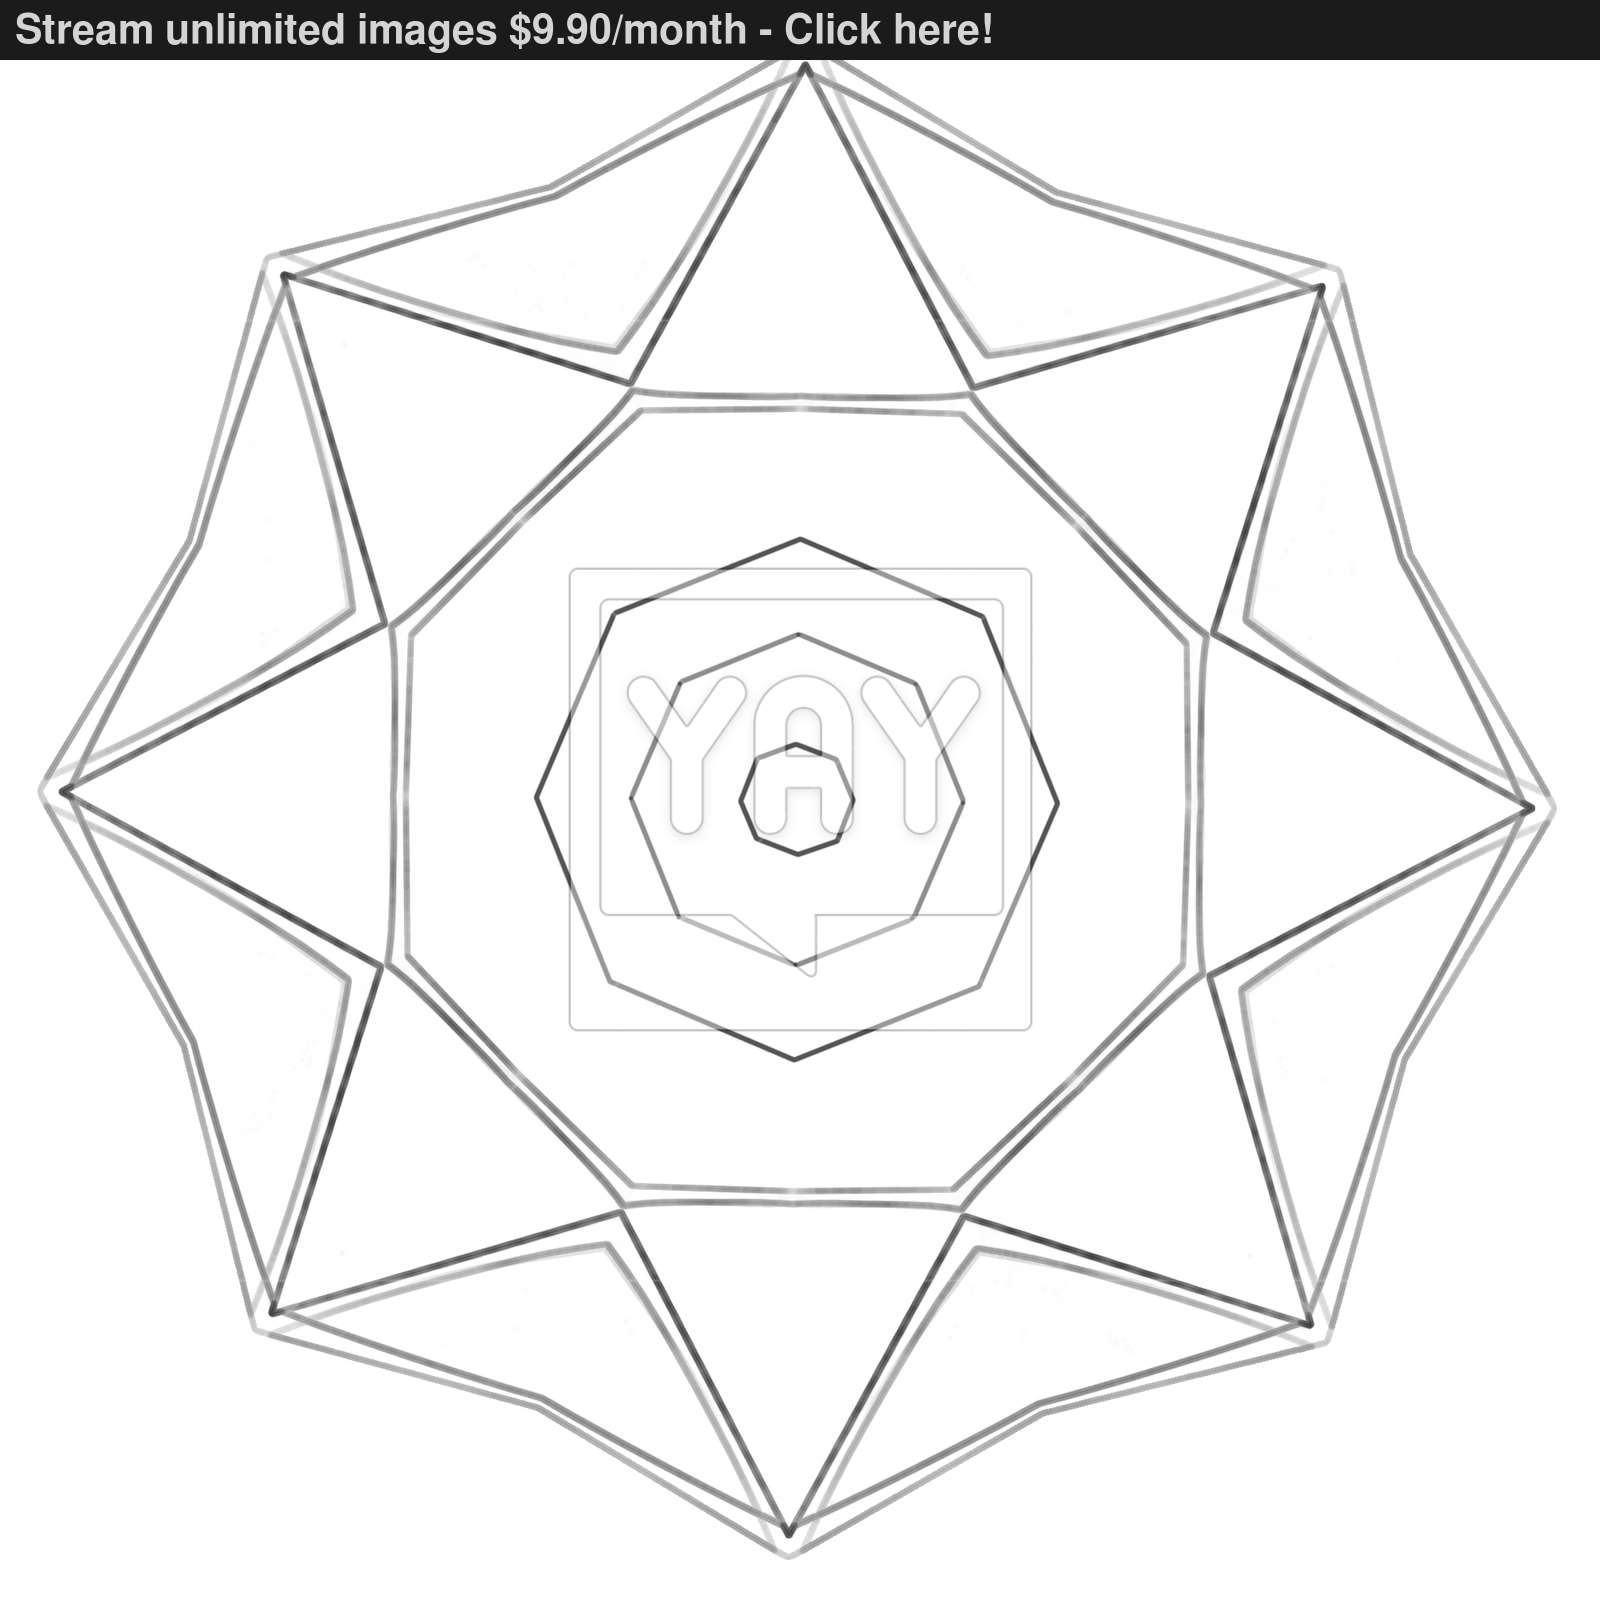 1600x1600 Illustration Coloring Book Series Octagon. Soft Thin Line. Print